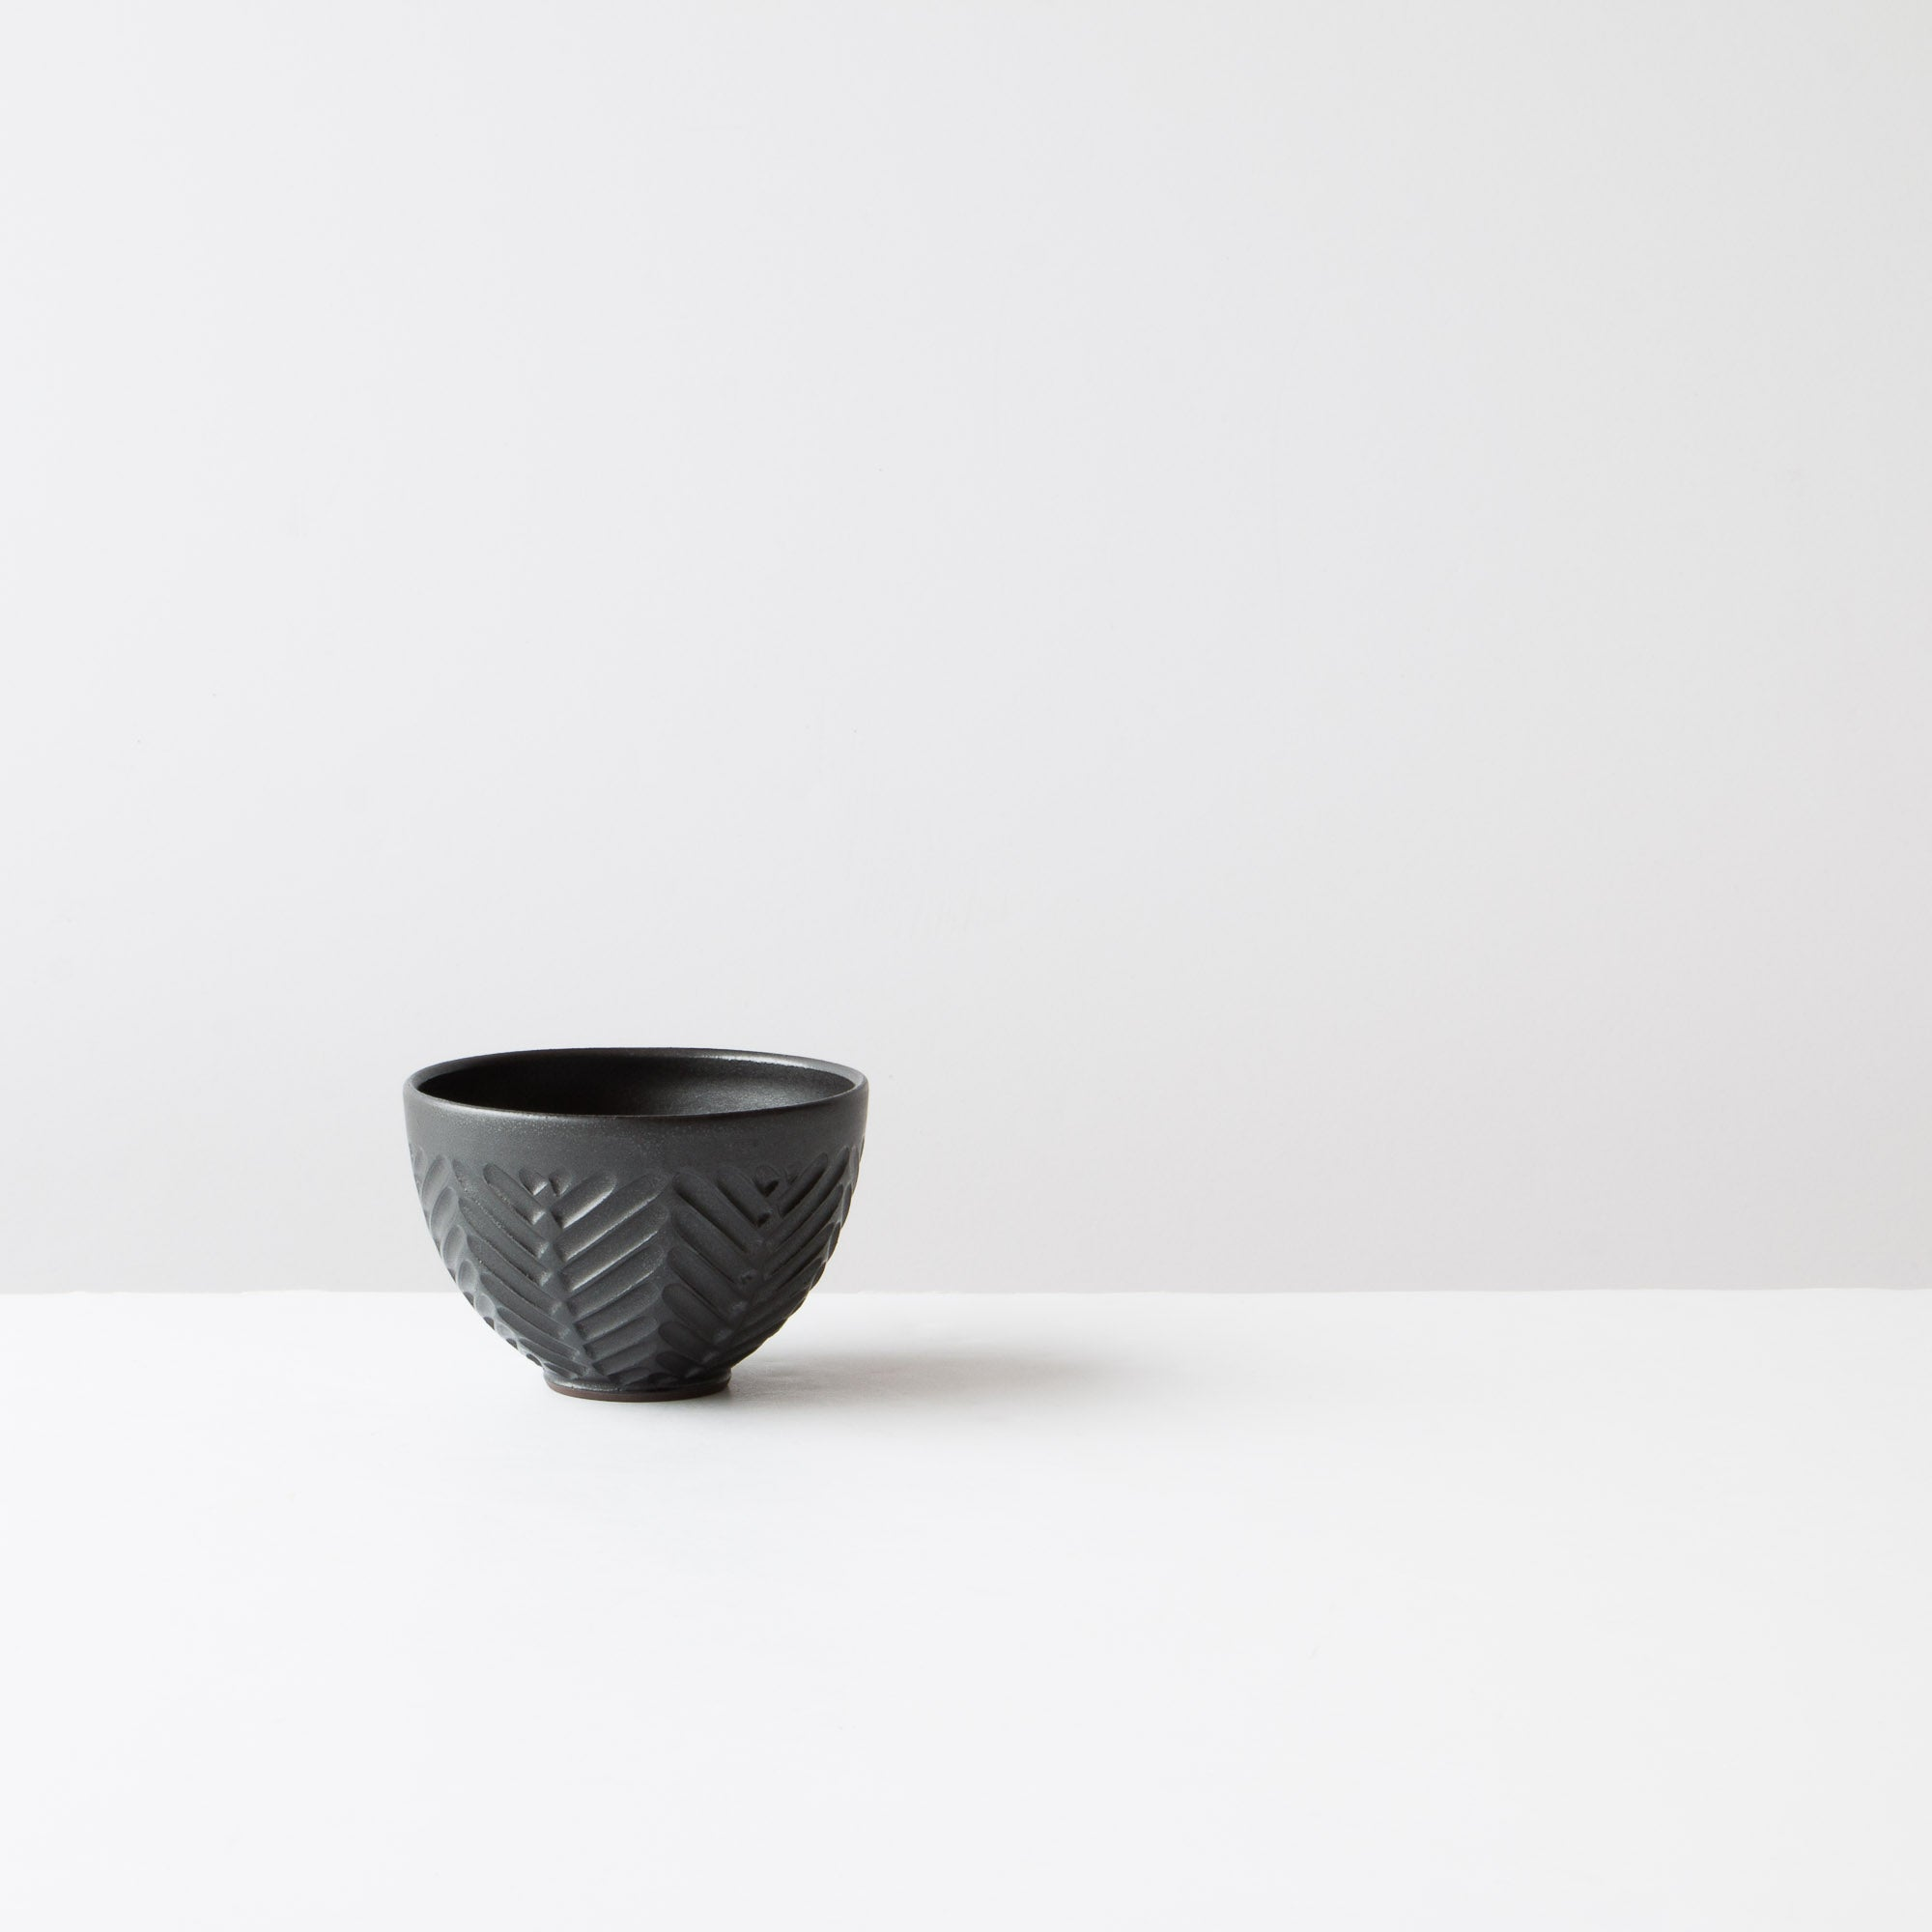 Black - Handmade Ceramic Cappuccino Coffee Cup - Sold by Chic & Basta